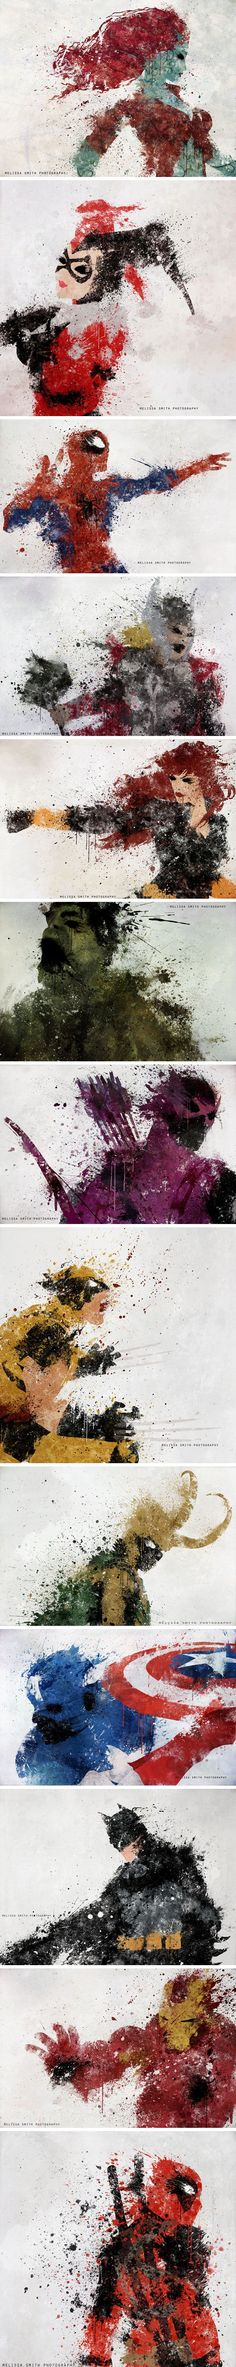 Melissa Smith's Superhero Splatter Art - For a moment I thought Thor was Hawkgirl and then I had some more coffee. But Captain America is AMAZING.